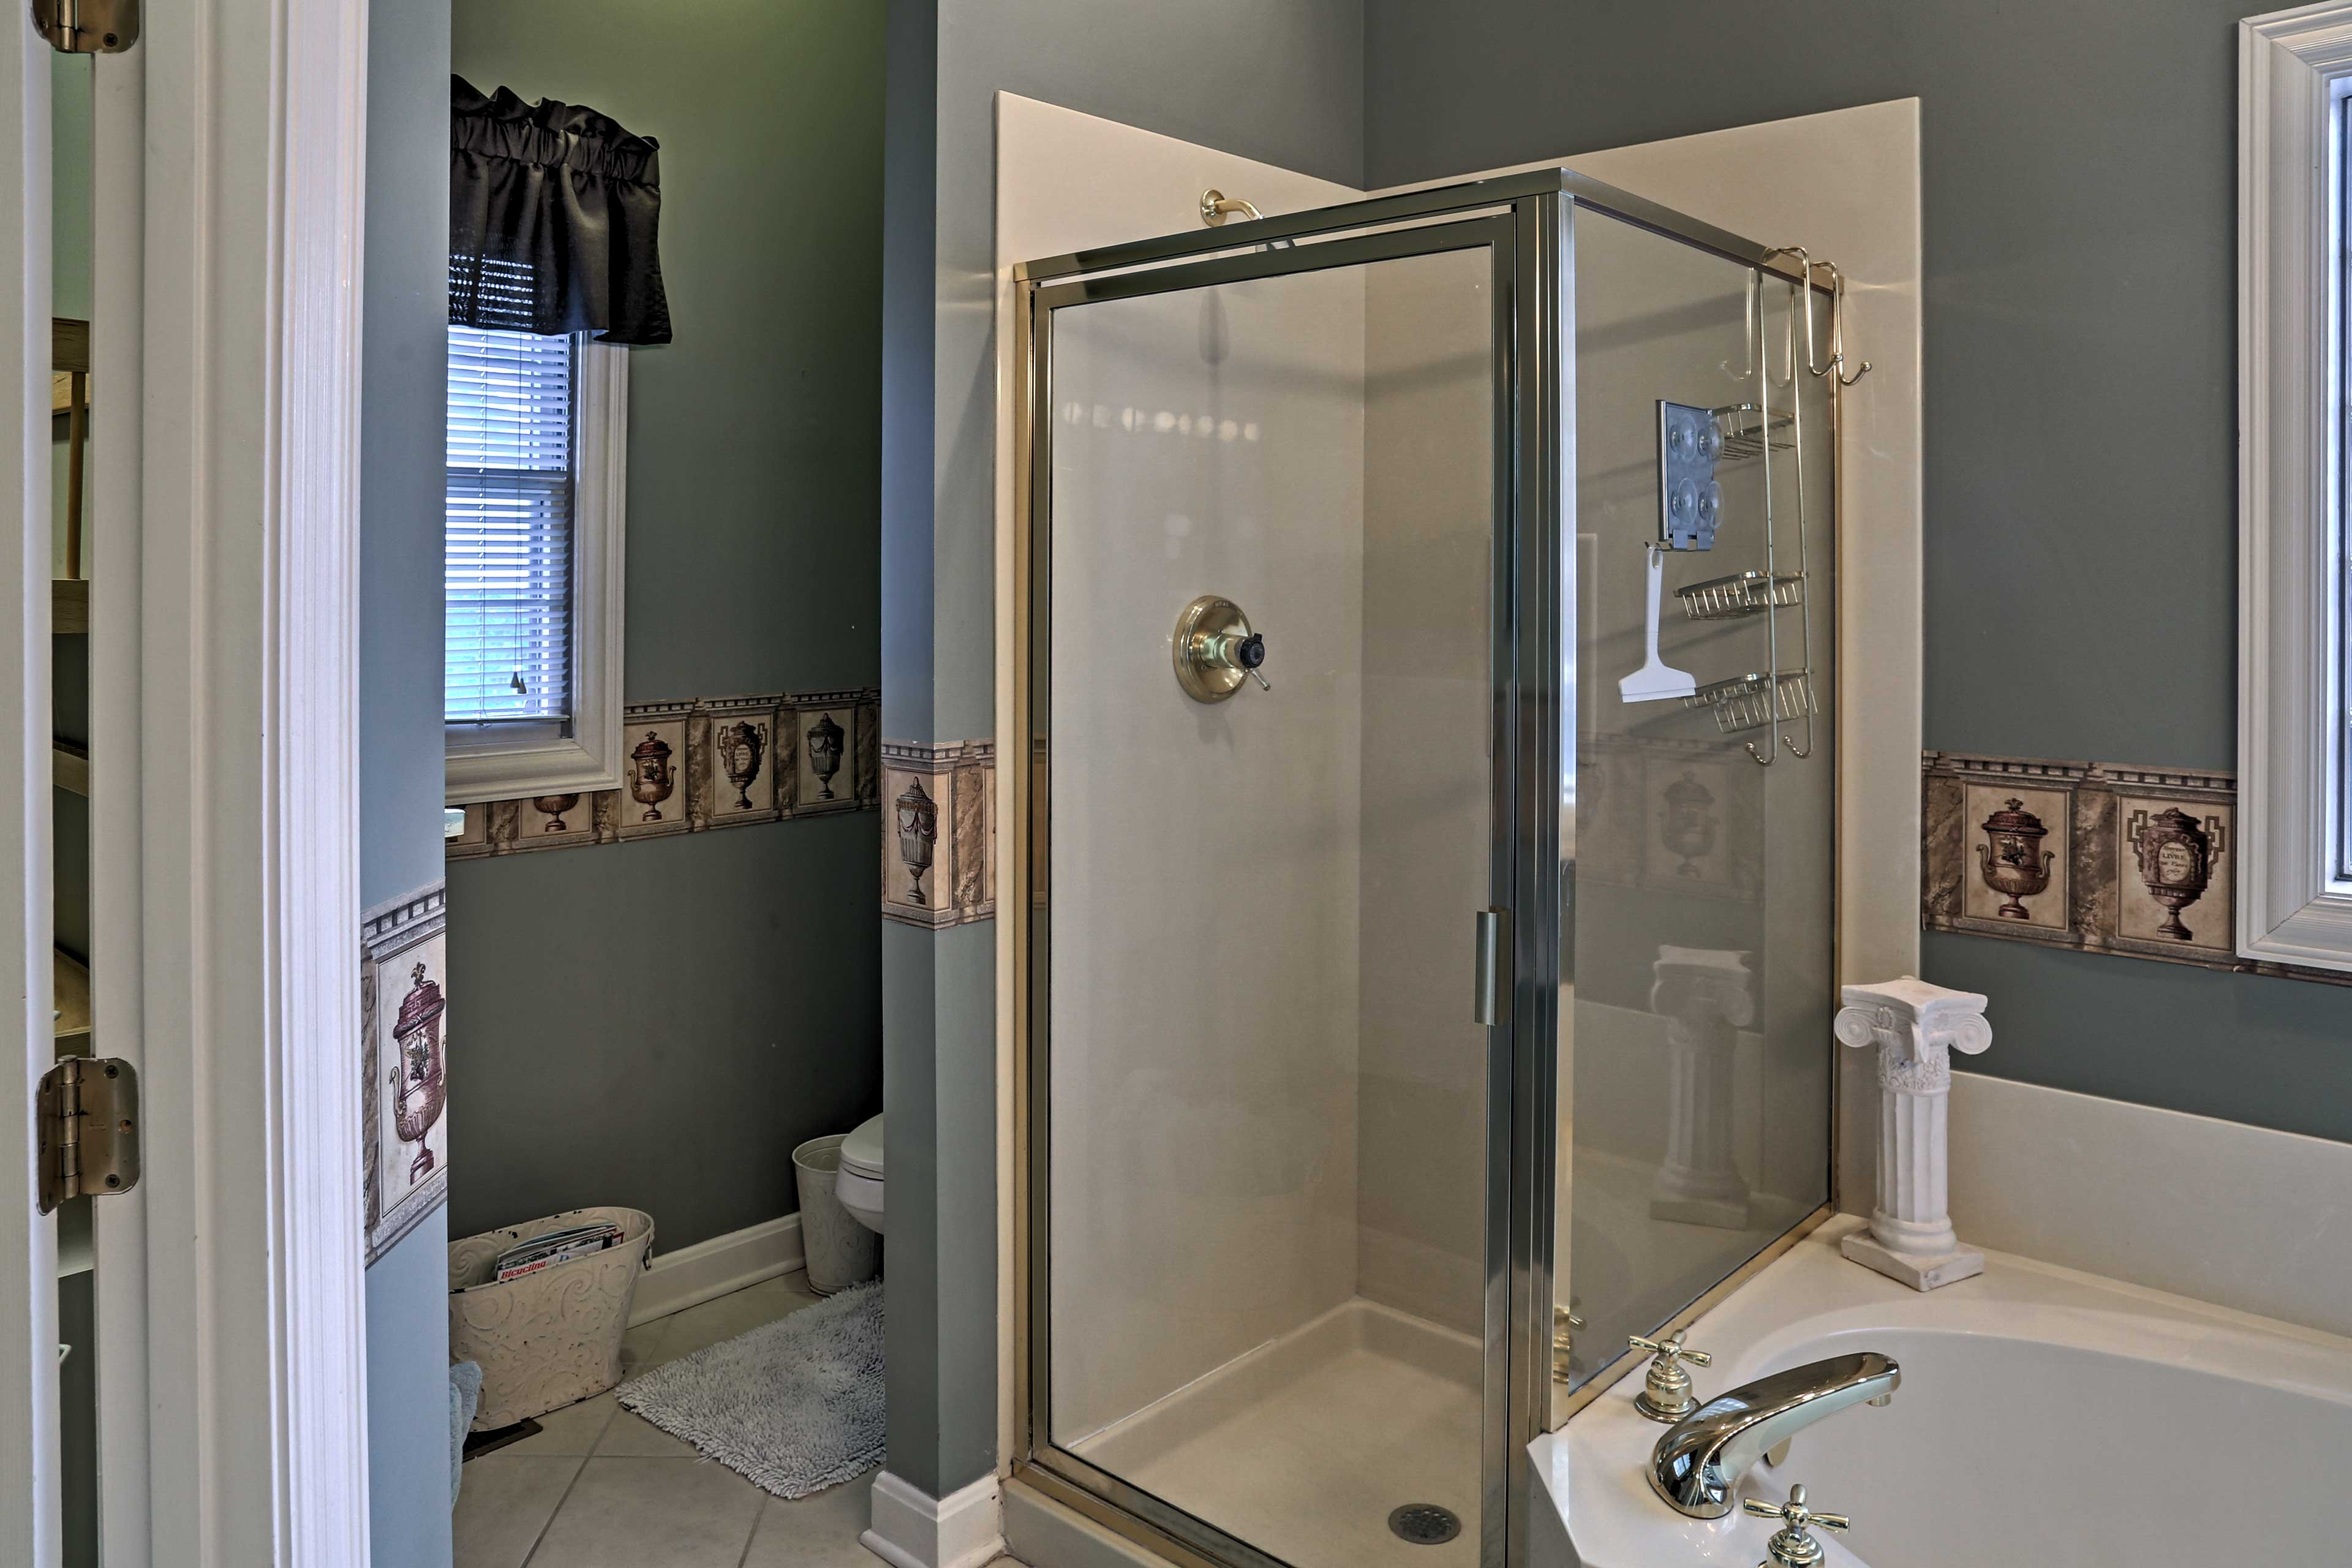 You can also enjoy a refreshing shower in this pristine bathroom.